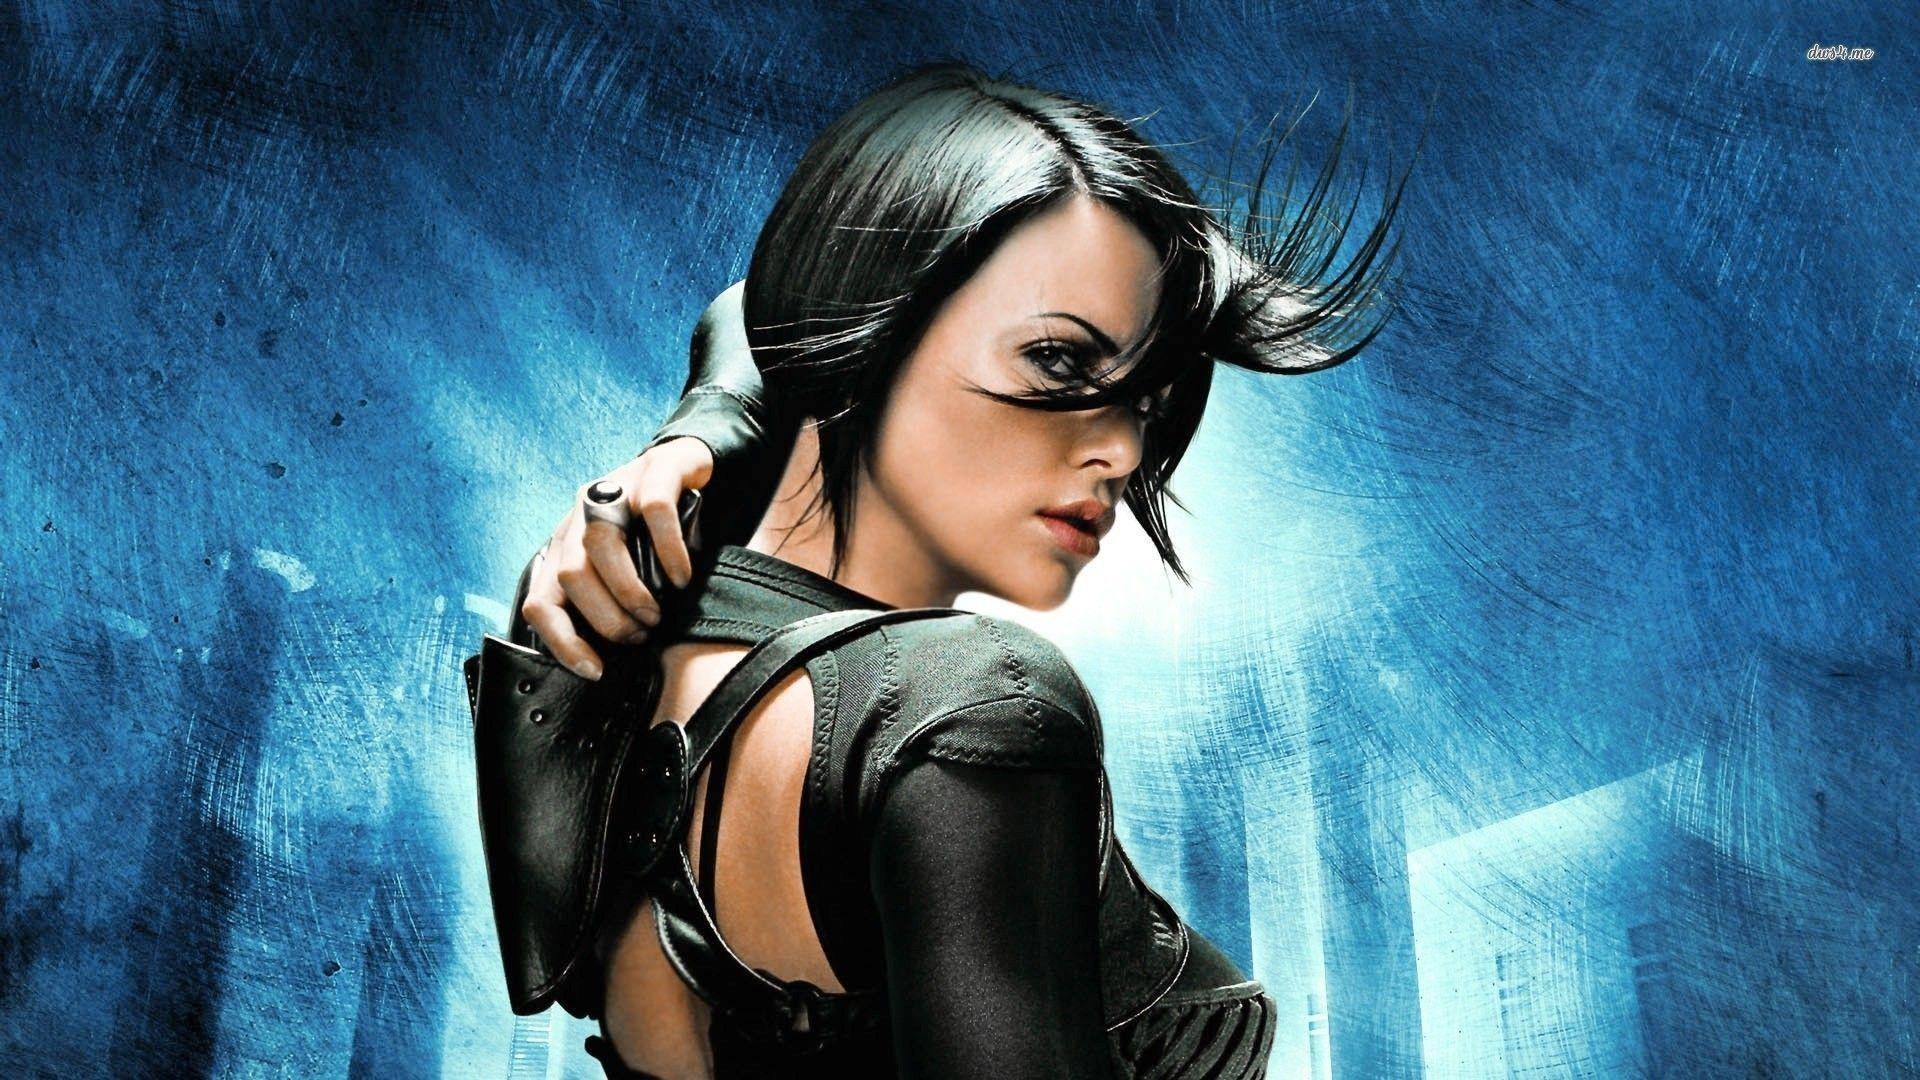 Æon Flux Wallpapers - Wallpaper Cave